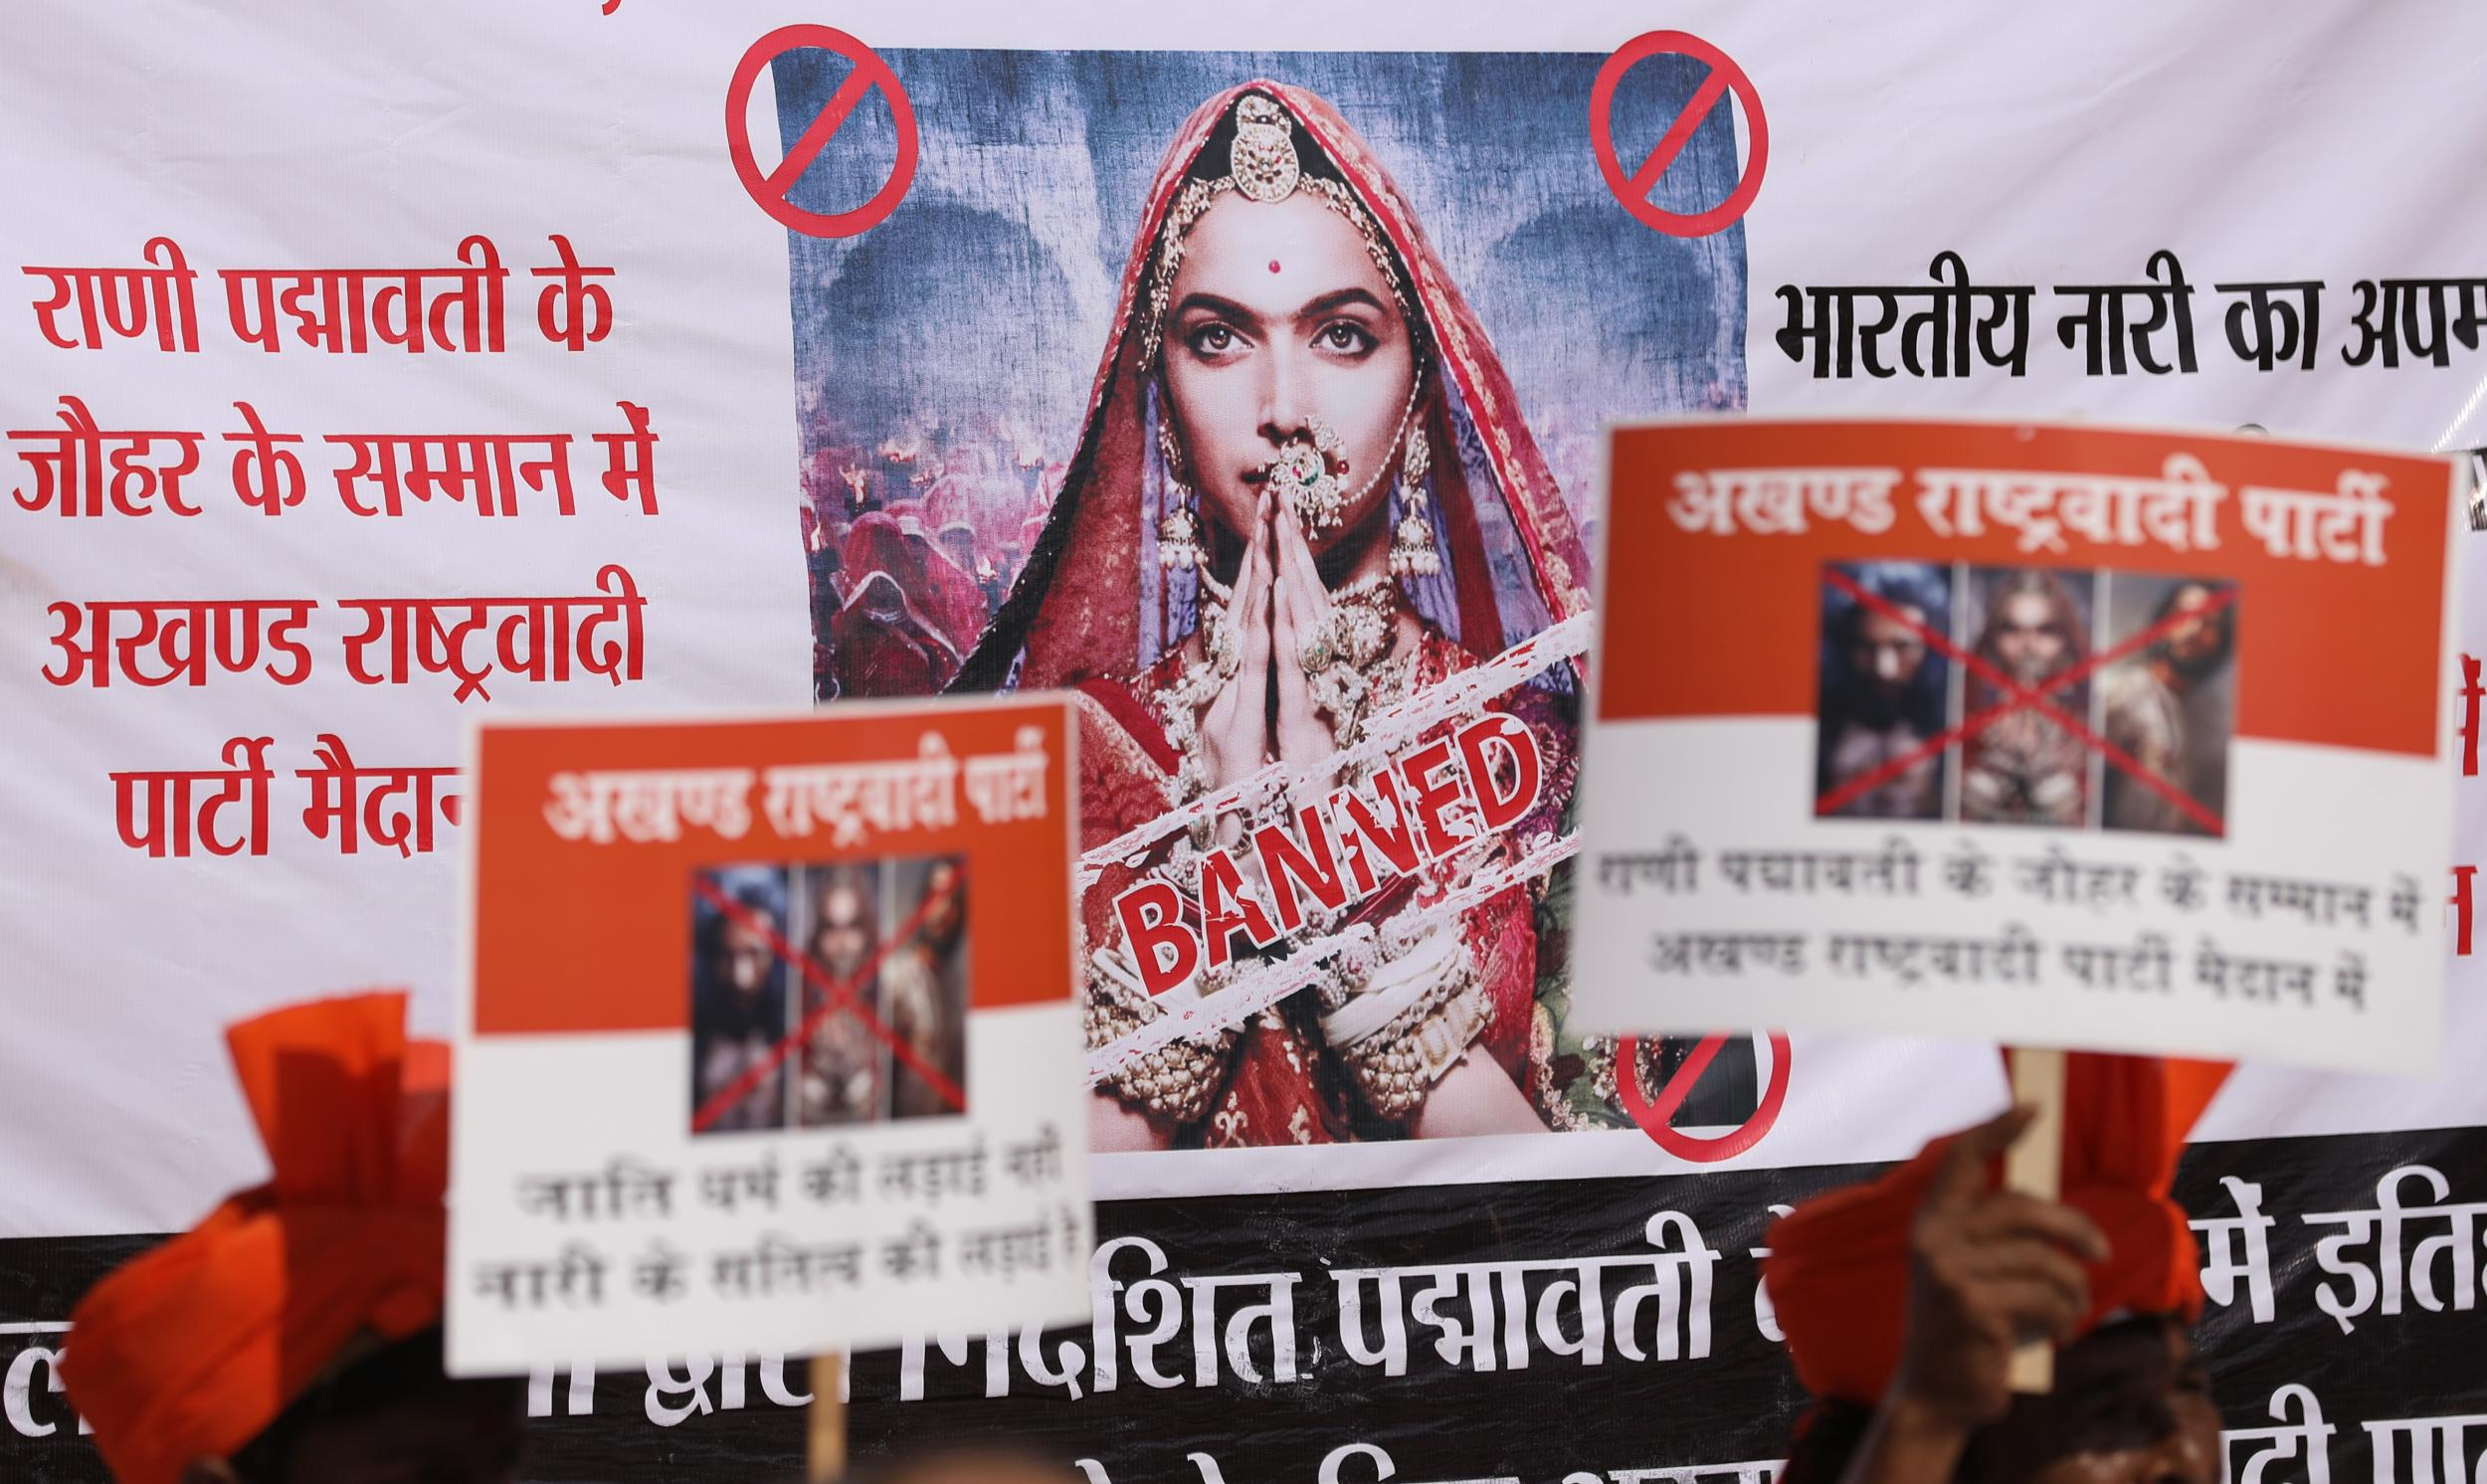 Bollywood epic 'Padmaavat' has emerged out of the mists of legend to divide Indian society